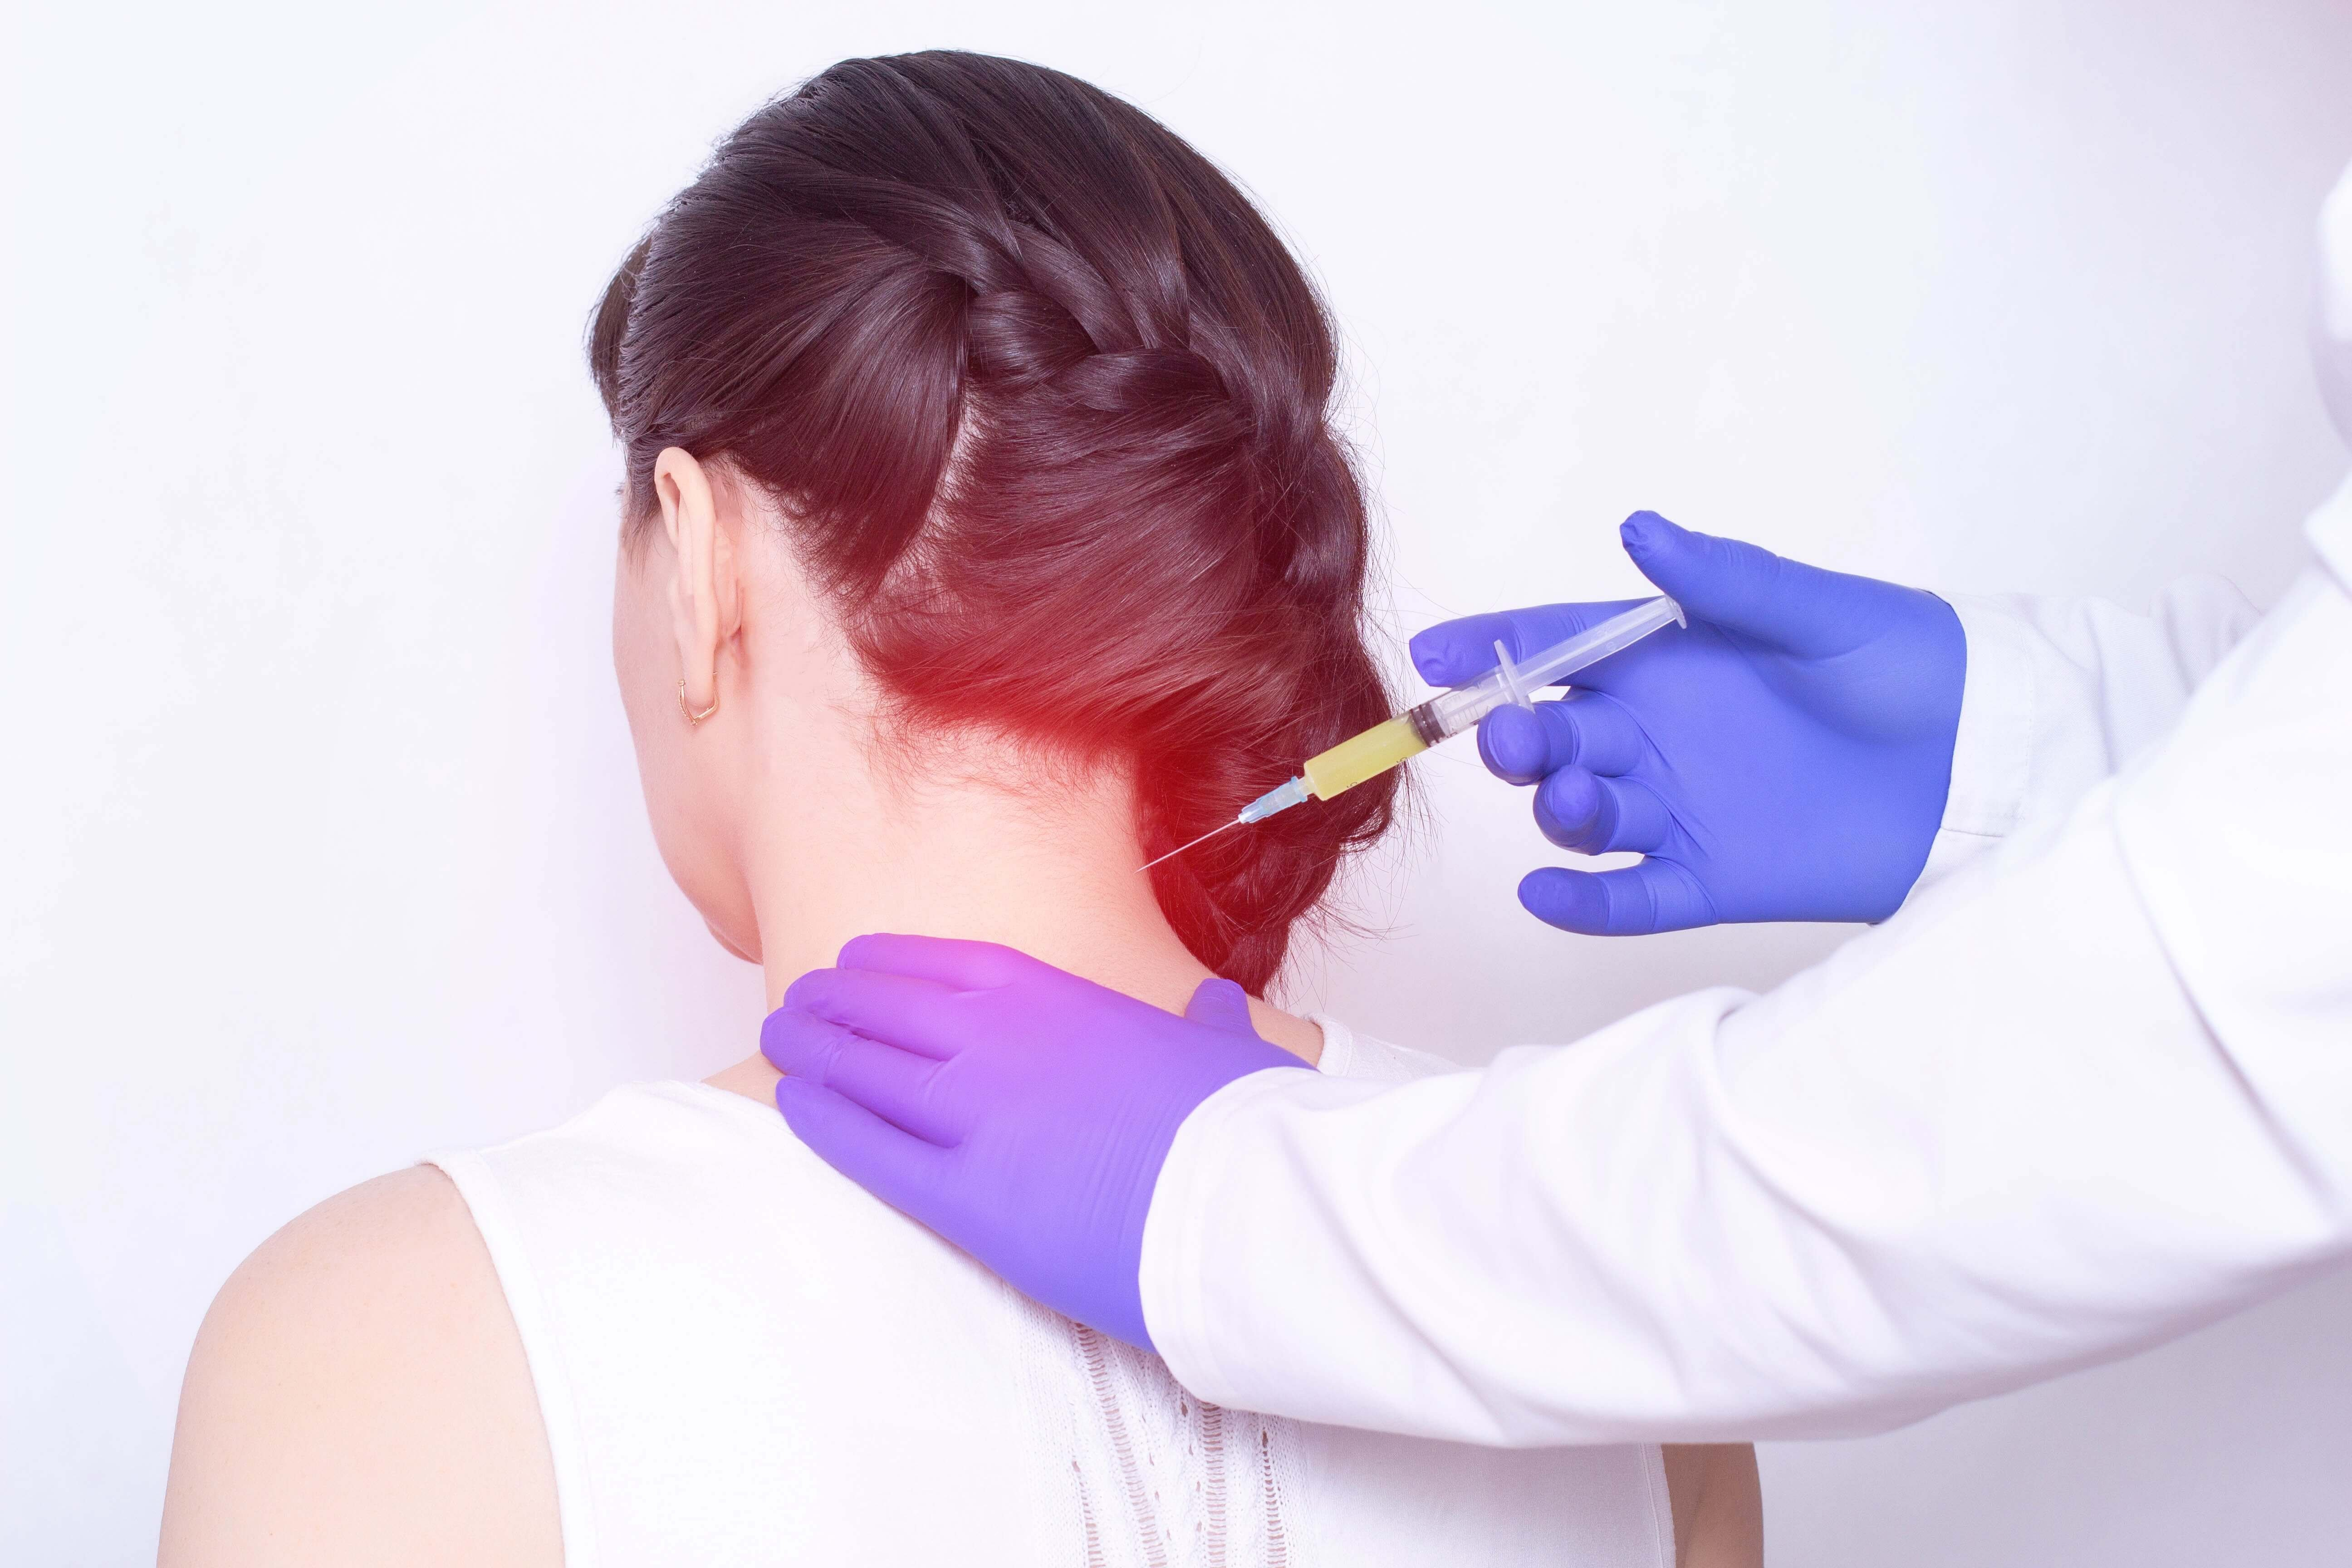 Injection in the back of the head